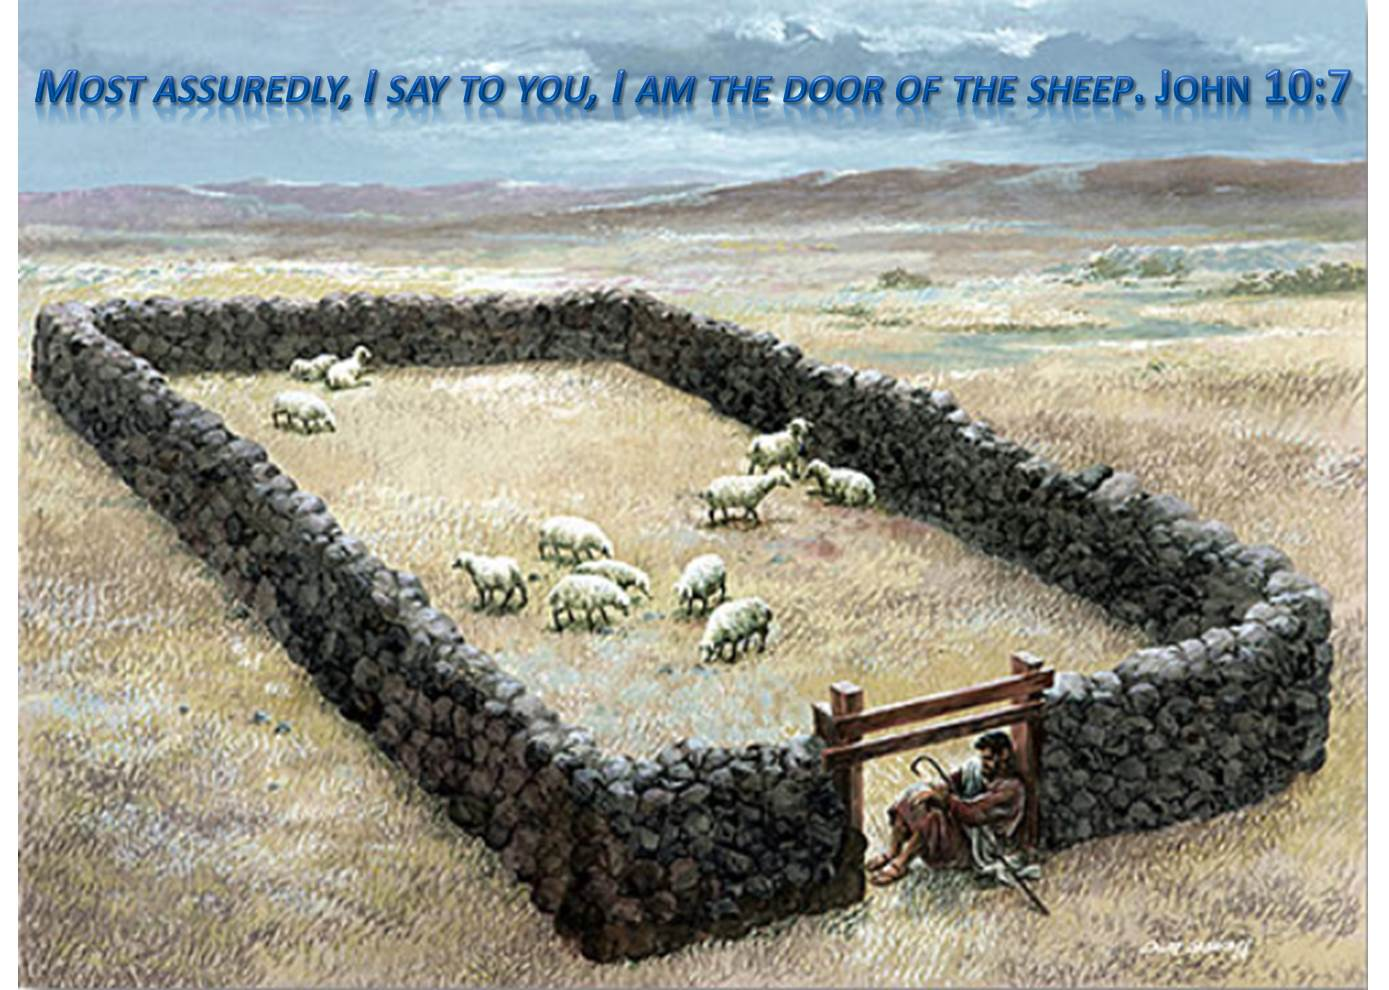 Yeshua is the Door